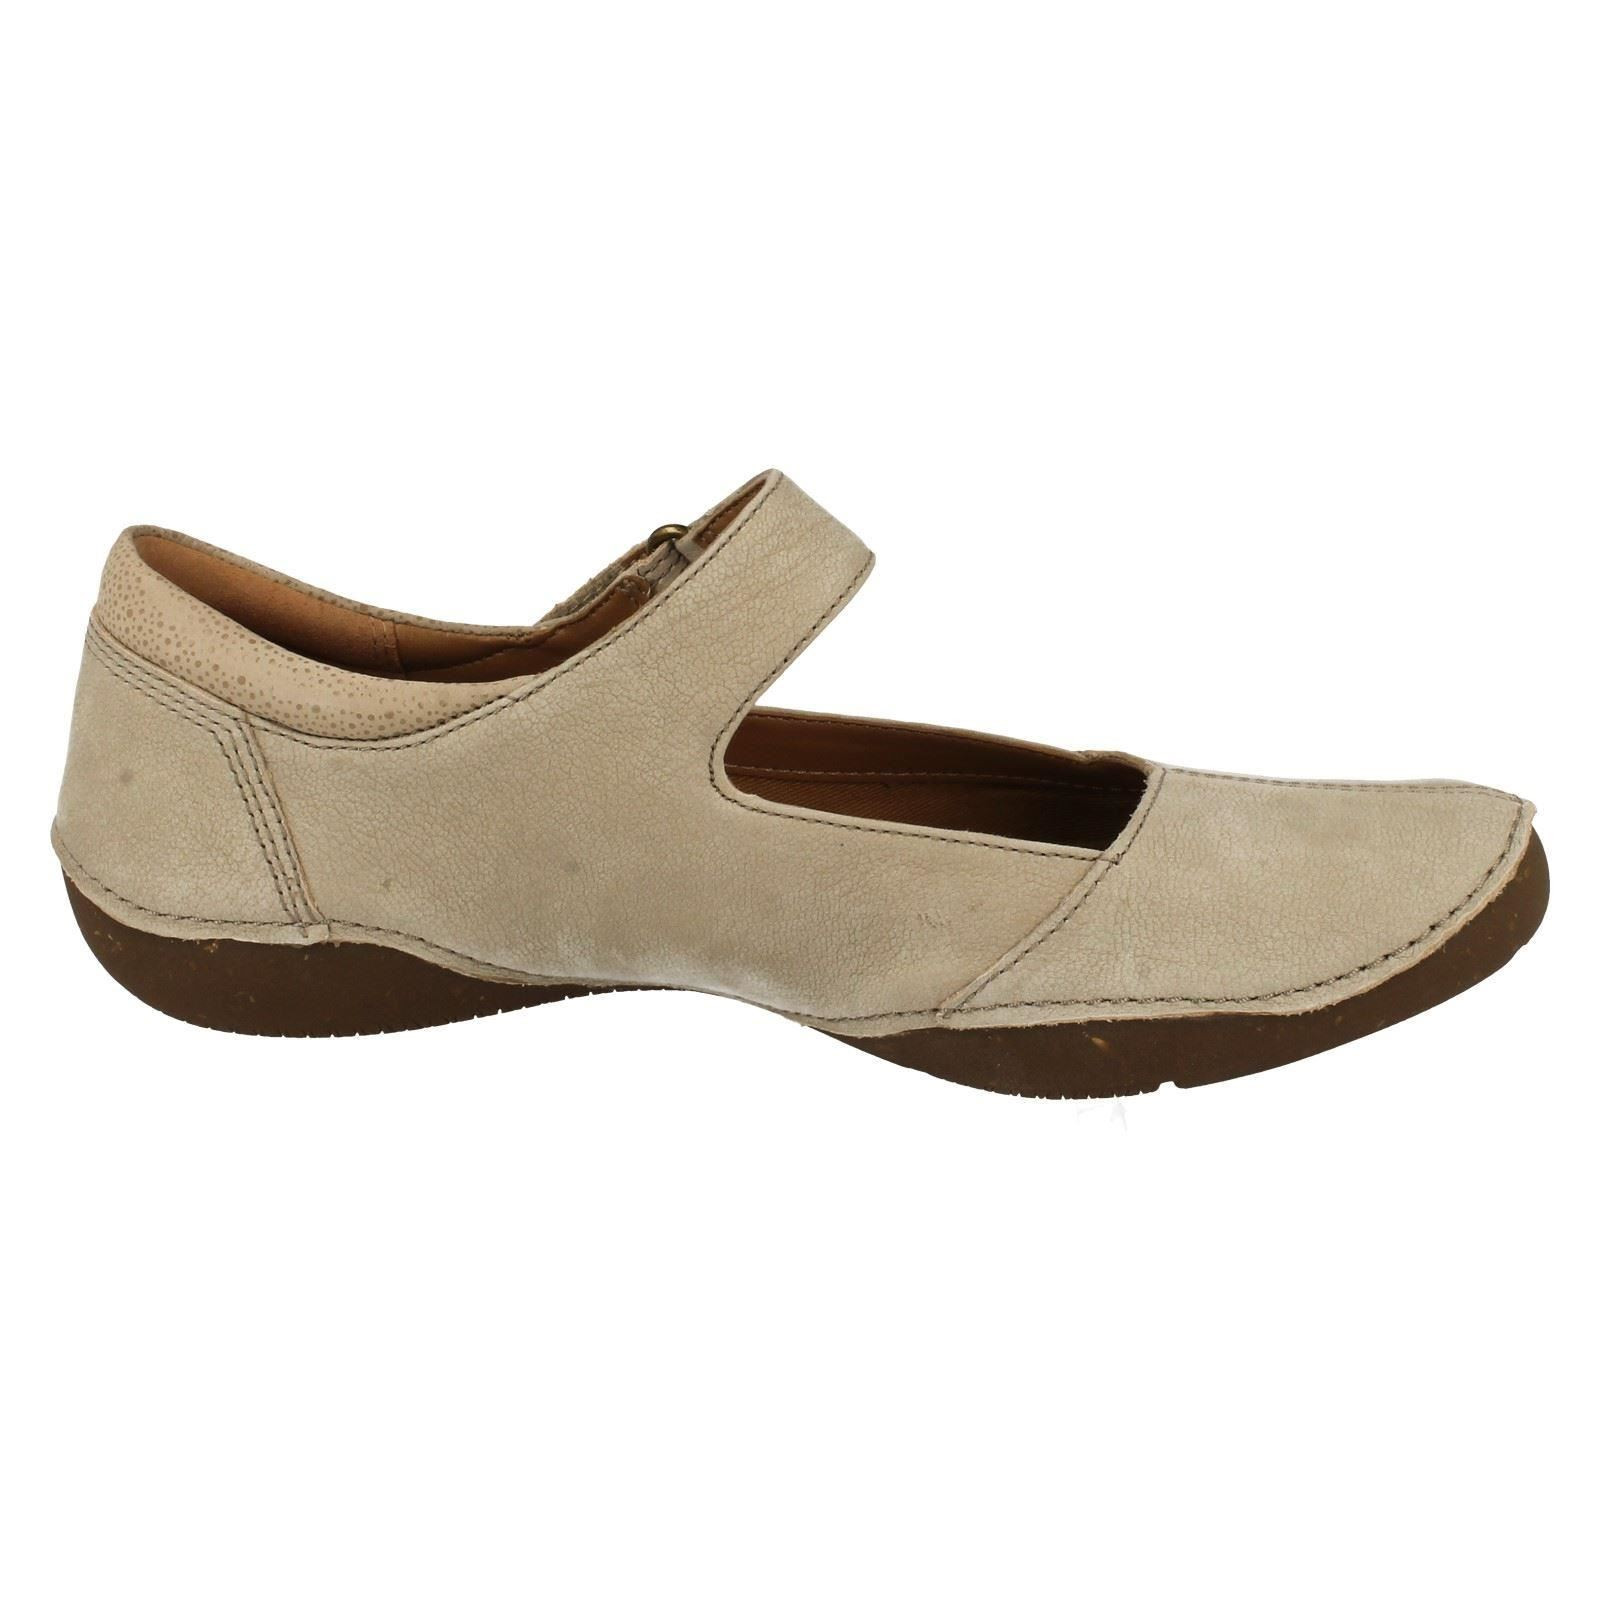 Ladies Clarks Casual Flat Shoes 'Butumn Stone'